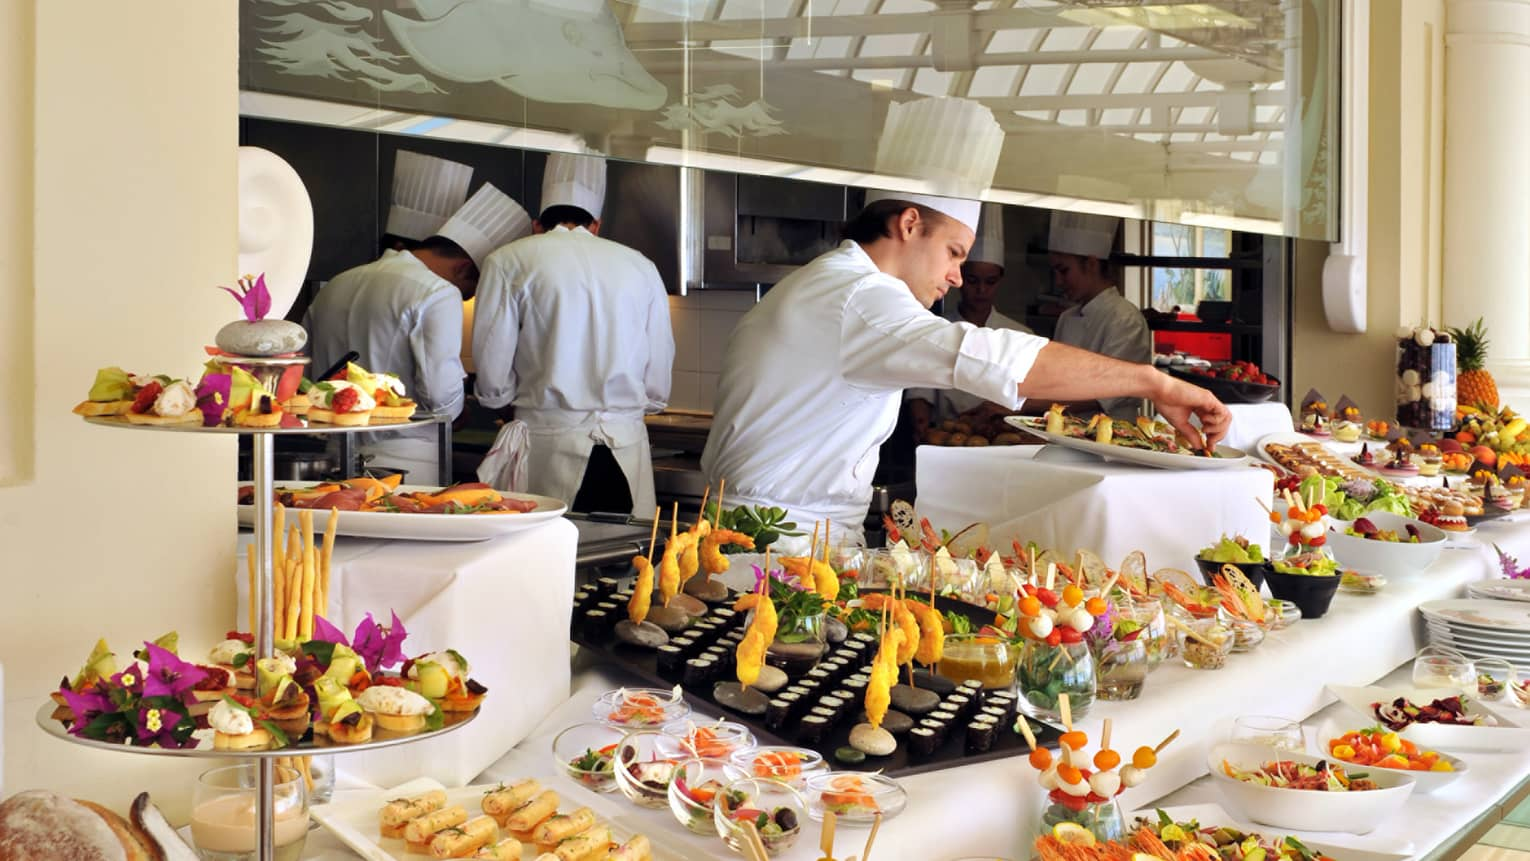 Club Dauphin chef wearing white uniform arranges gourmet appetizers on buffet table